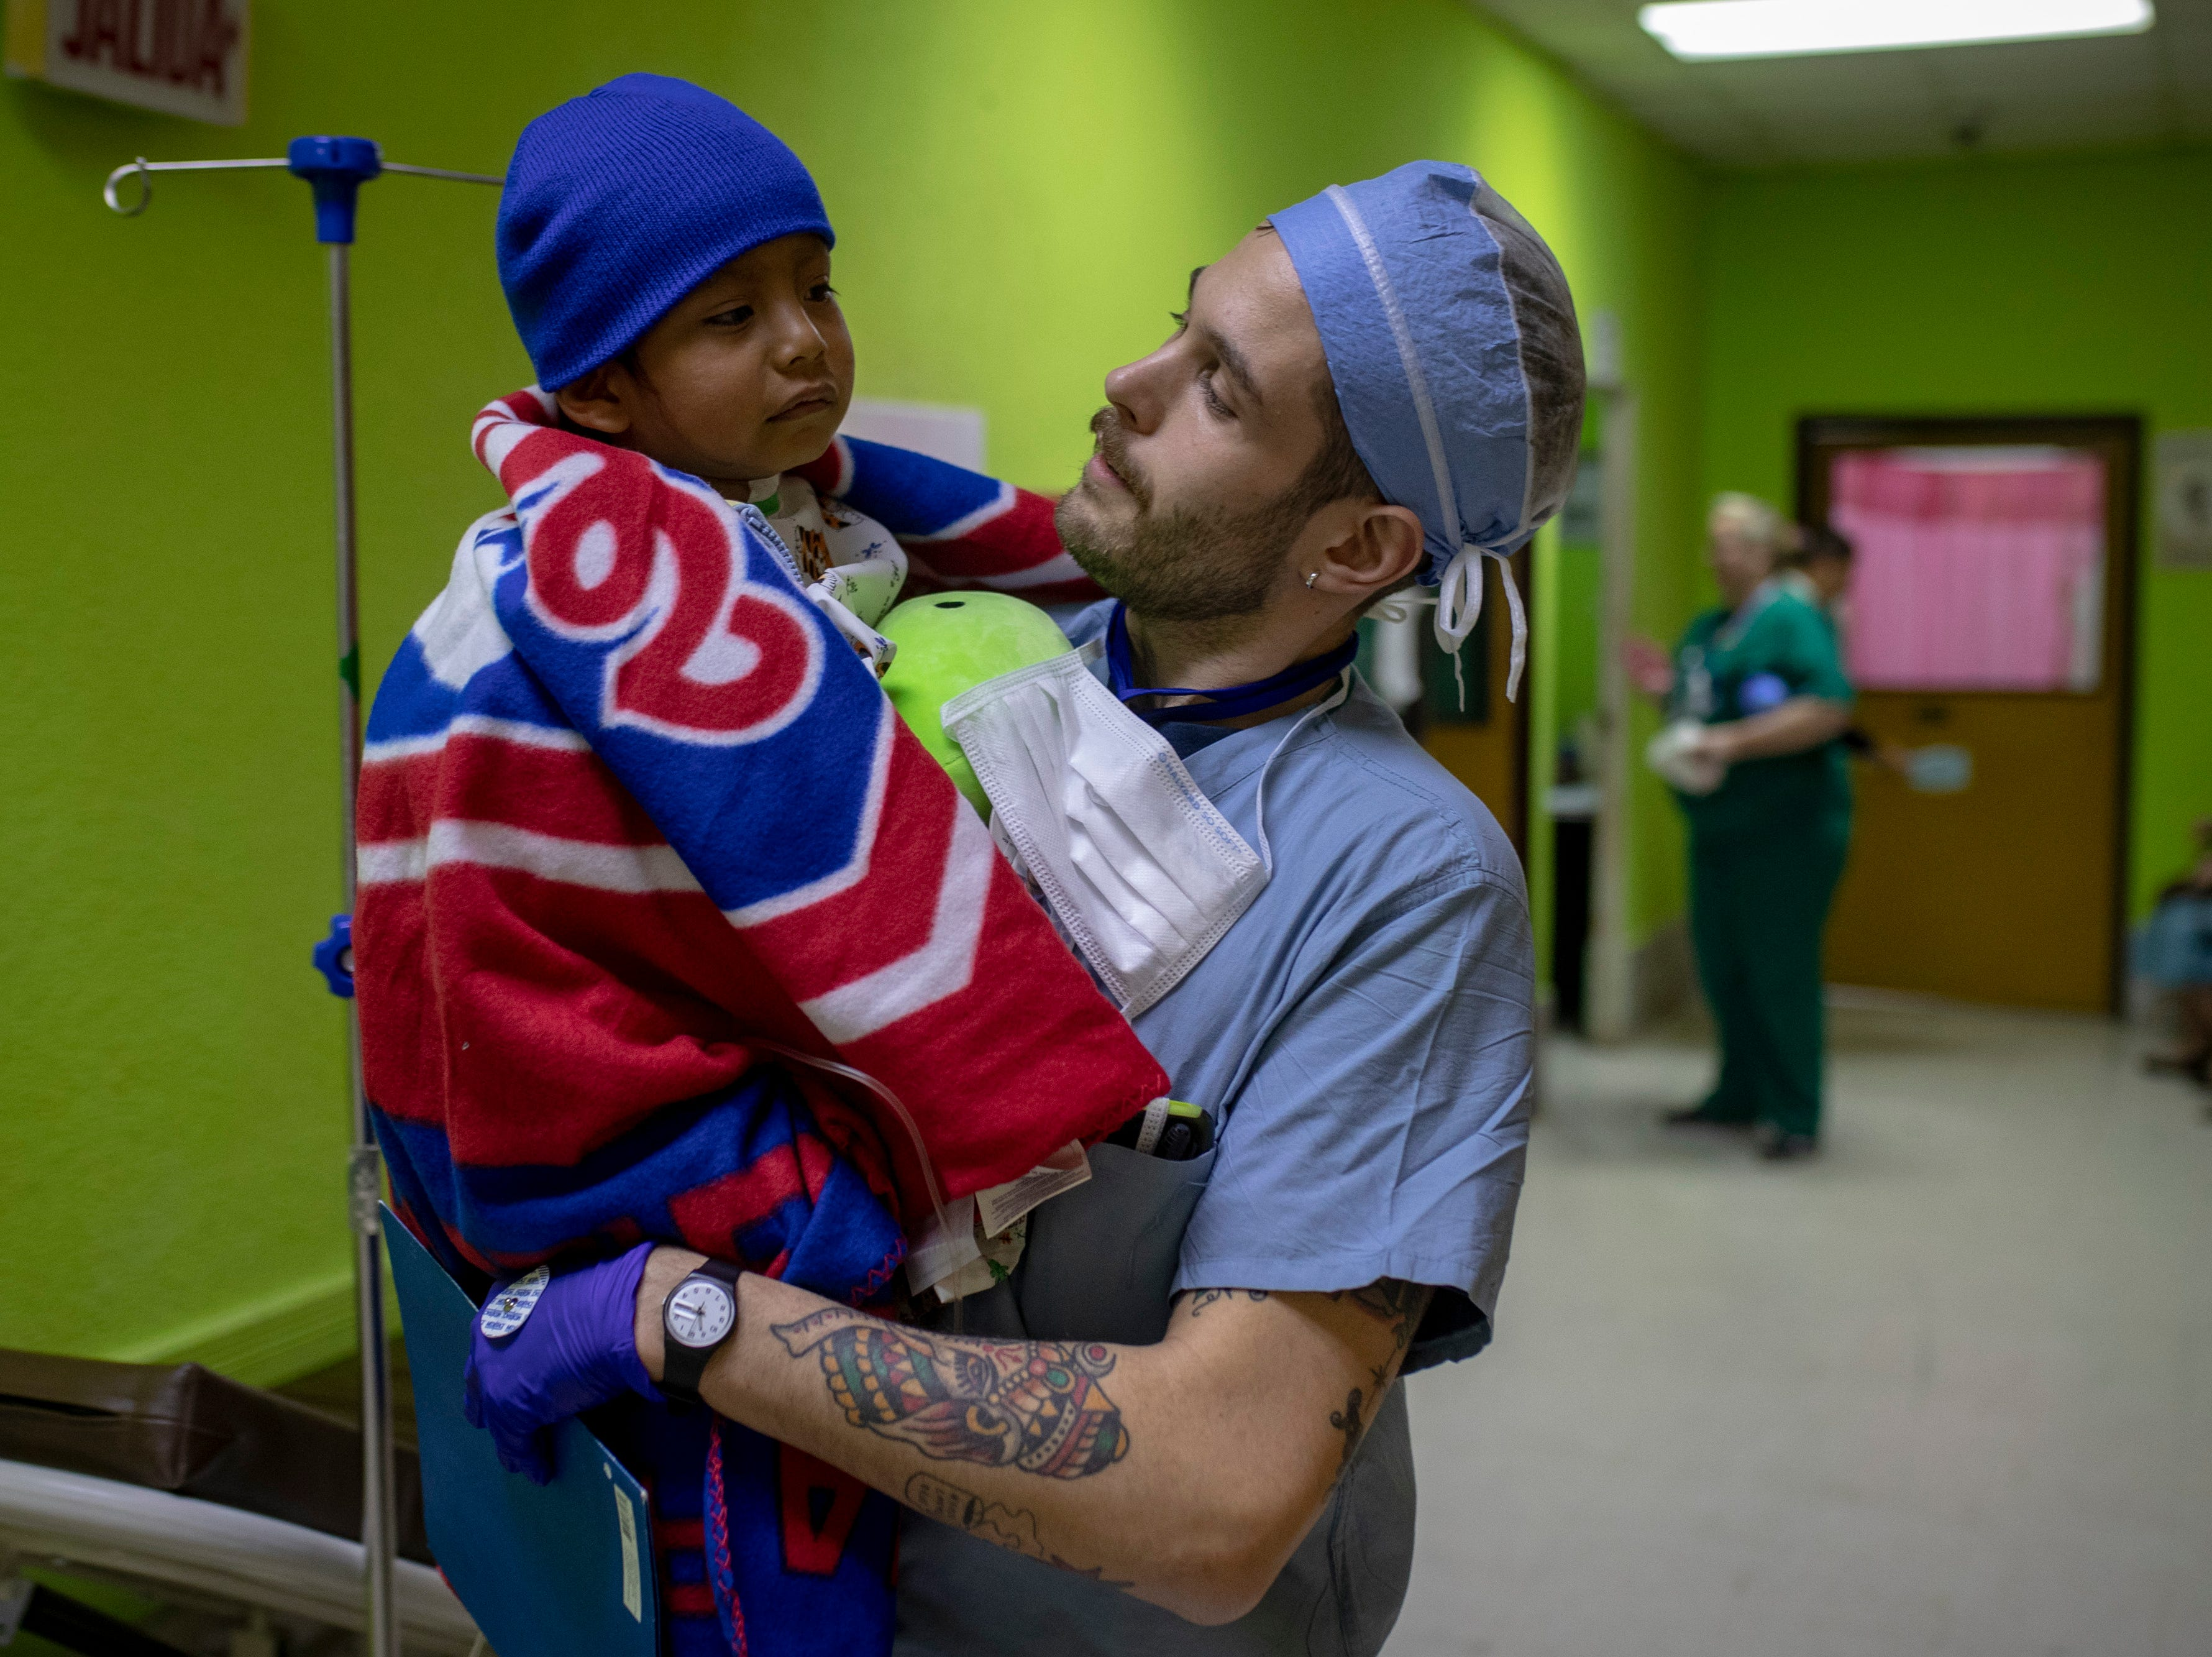 Fernando Damien Ixocopal Garcia, 5, is carried by COTA PACU nurse James Smith of Philadelphia to the children's recovery area following his surgery. Jan. 21, 2019